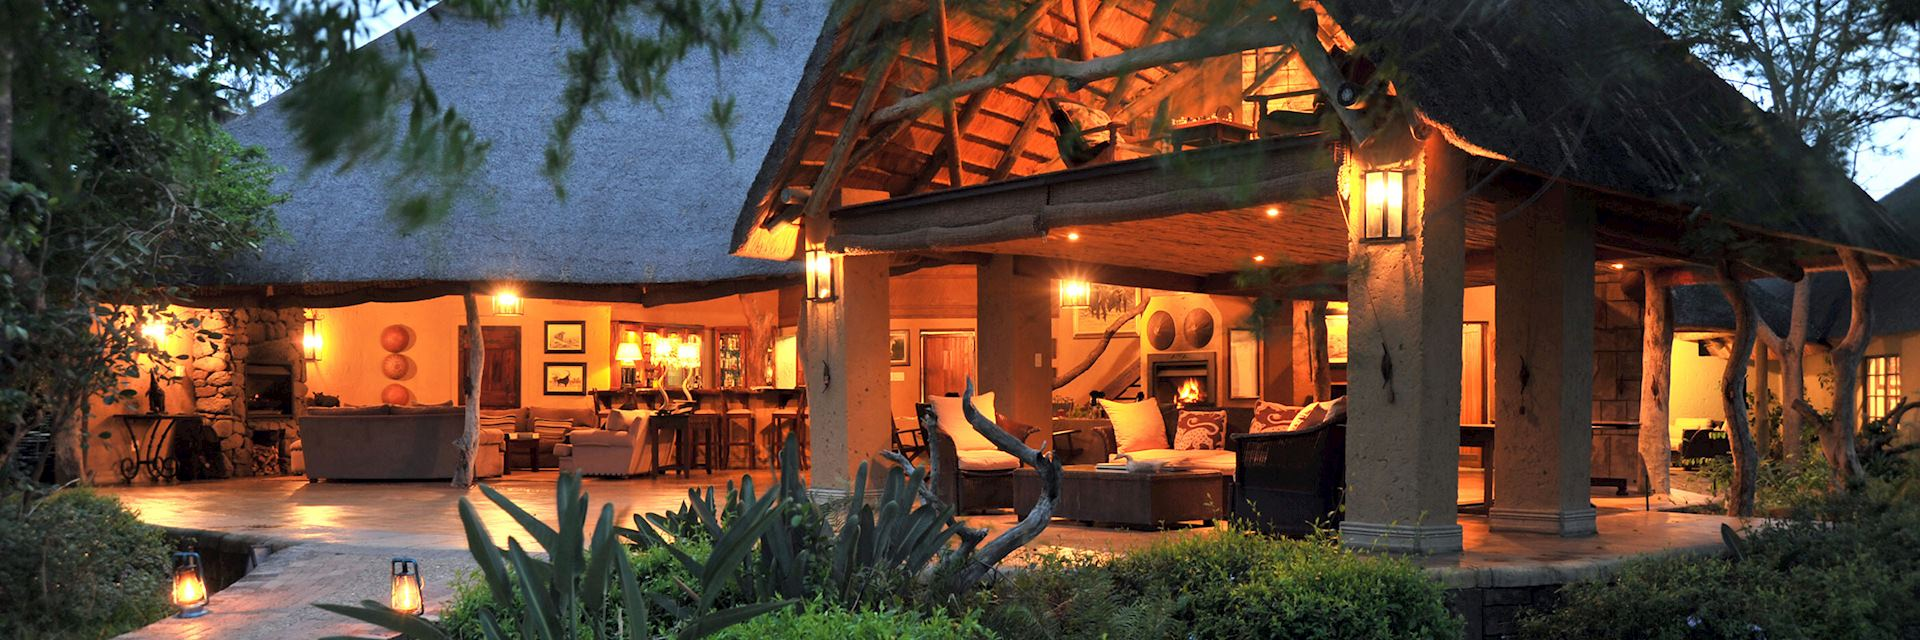 Savanna Private Game Reserve, Sabi Sands Wildtuin